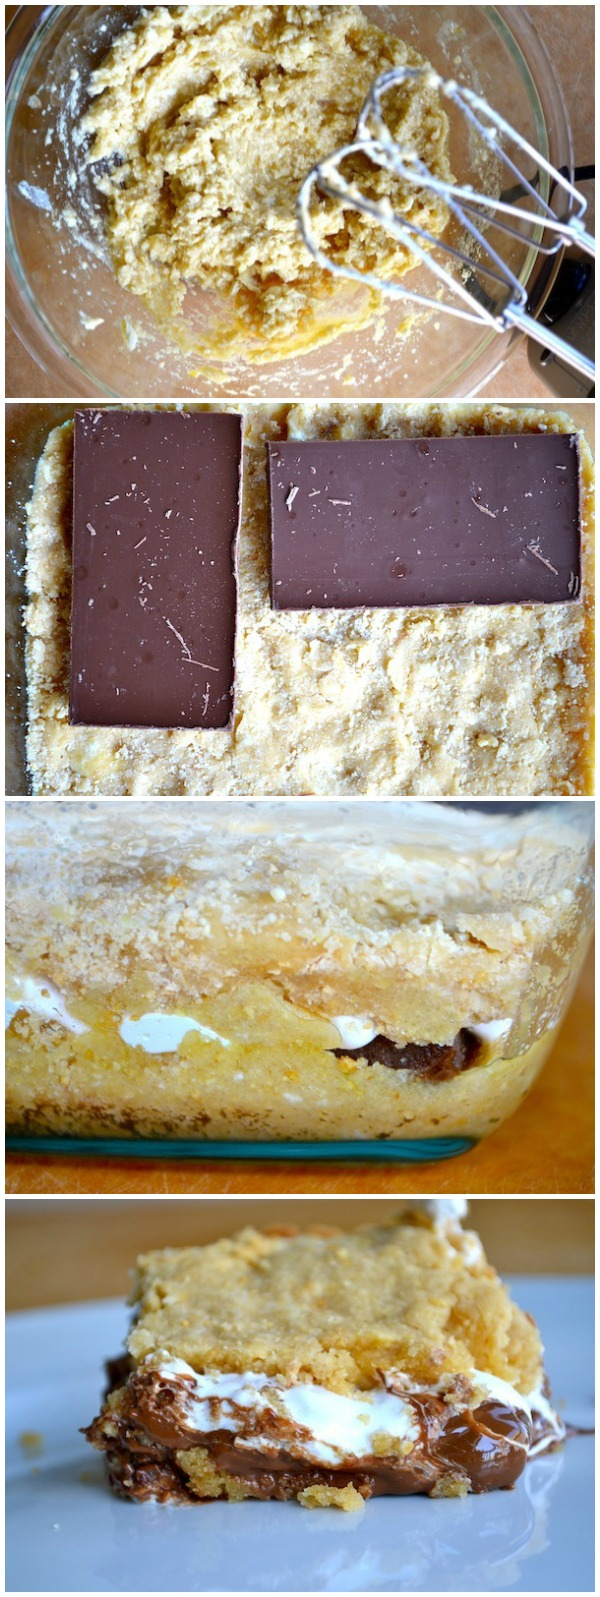 Baked Smores Bars from Rachel Schultz